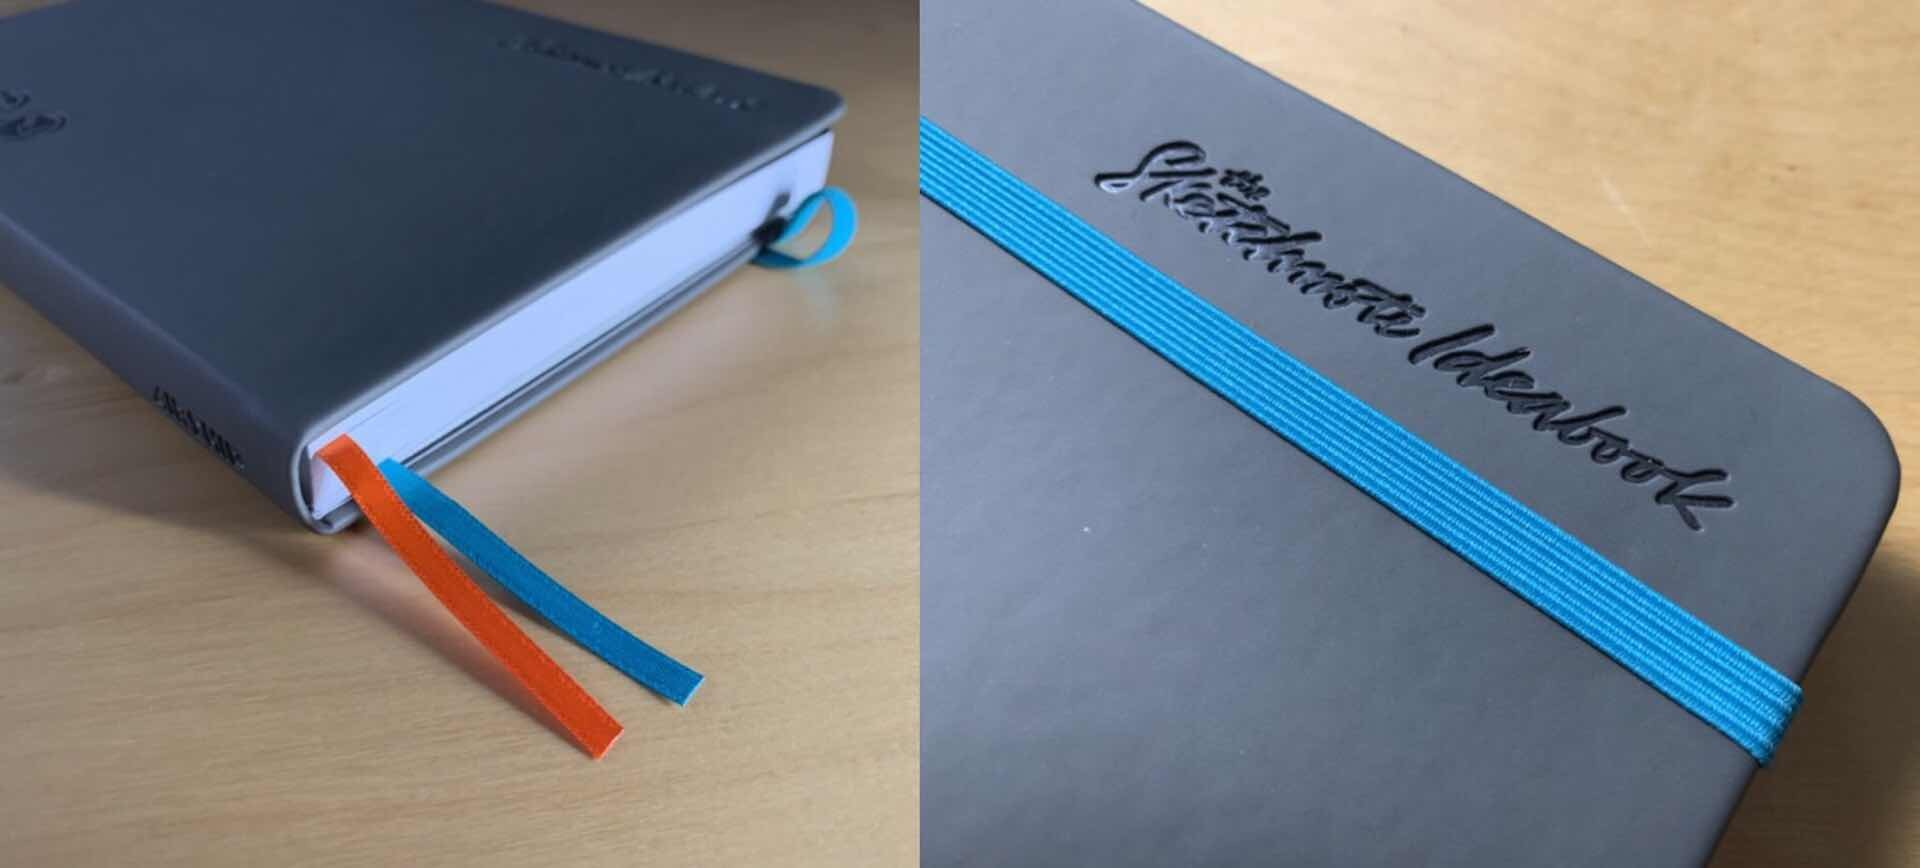 the-sketchnote-ideabook-bookmark-ribbons-and-elastic-strap